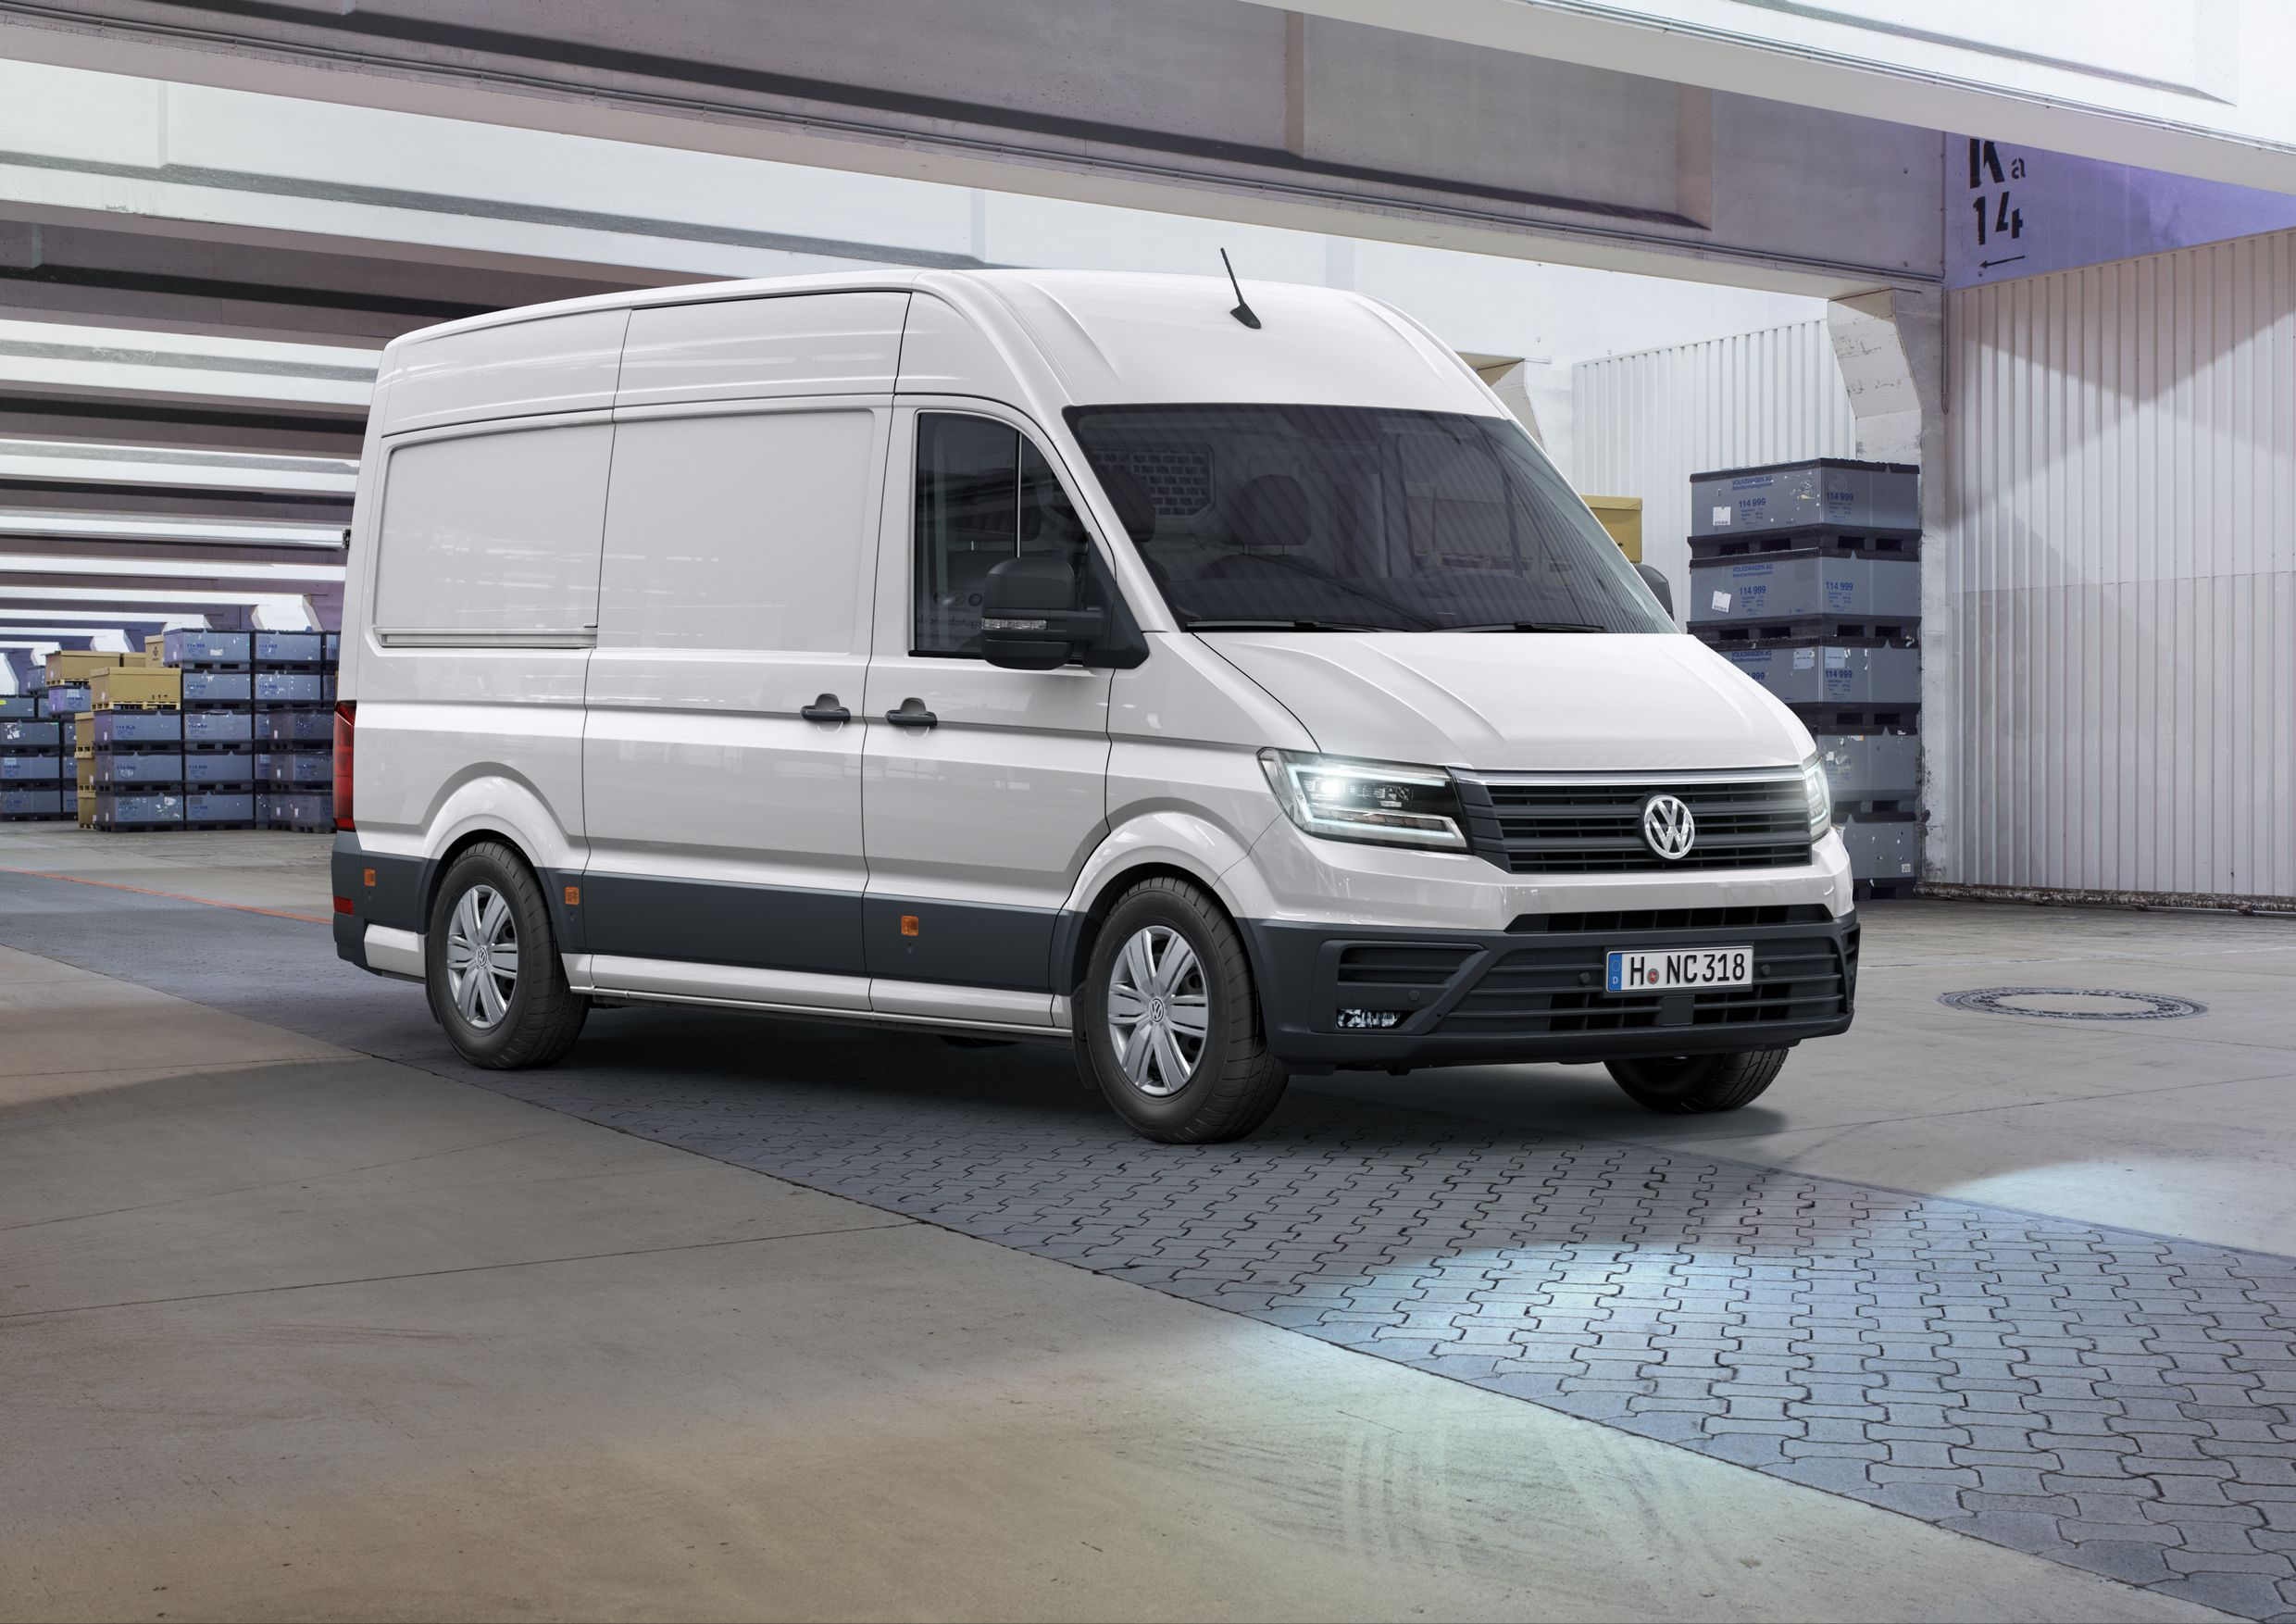 vw crafter 2017 avis essai topic officiel volkswagen forum marques. Black Bedroom Furniture Sets. Home Design Ideas